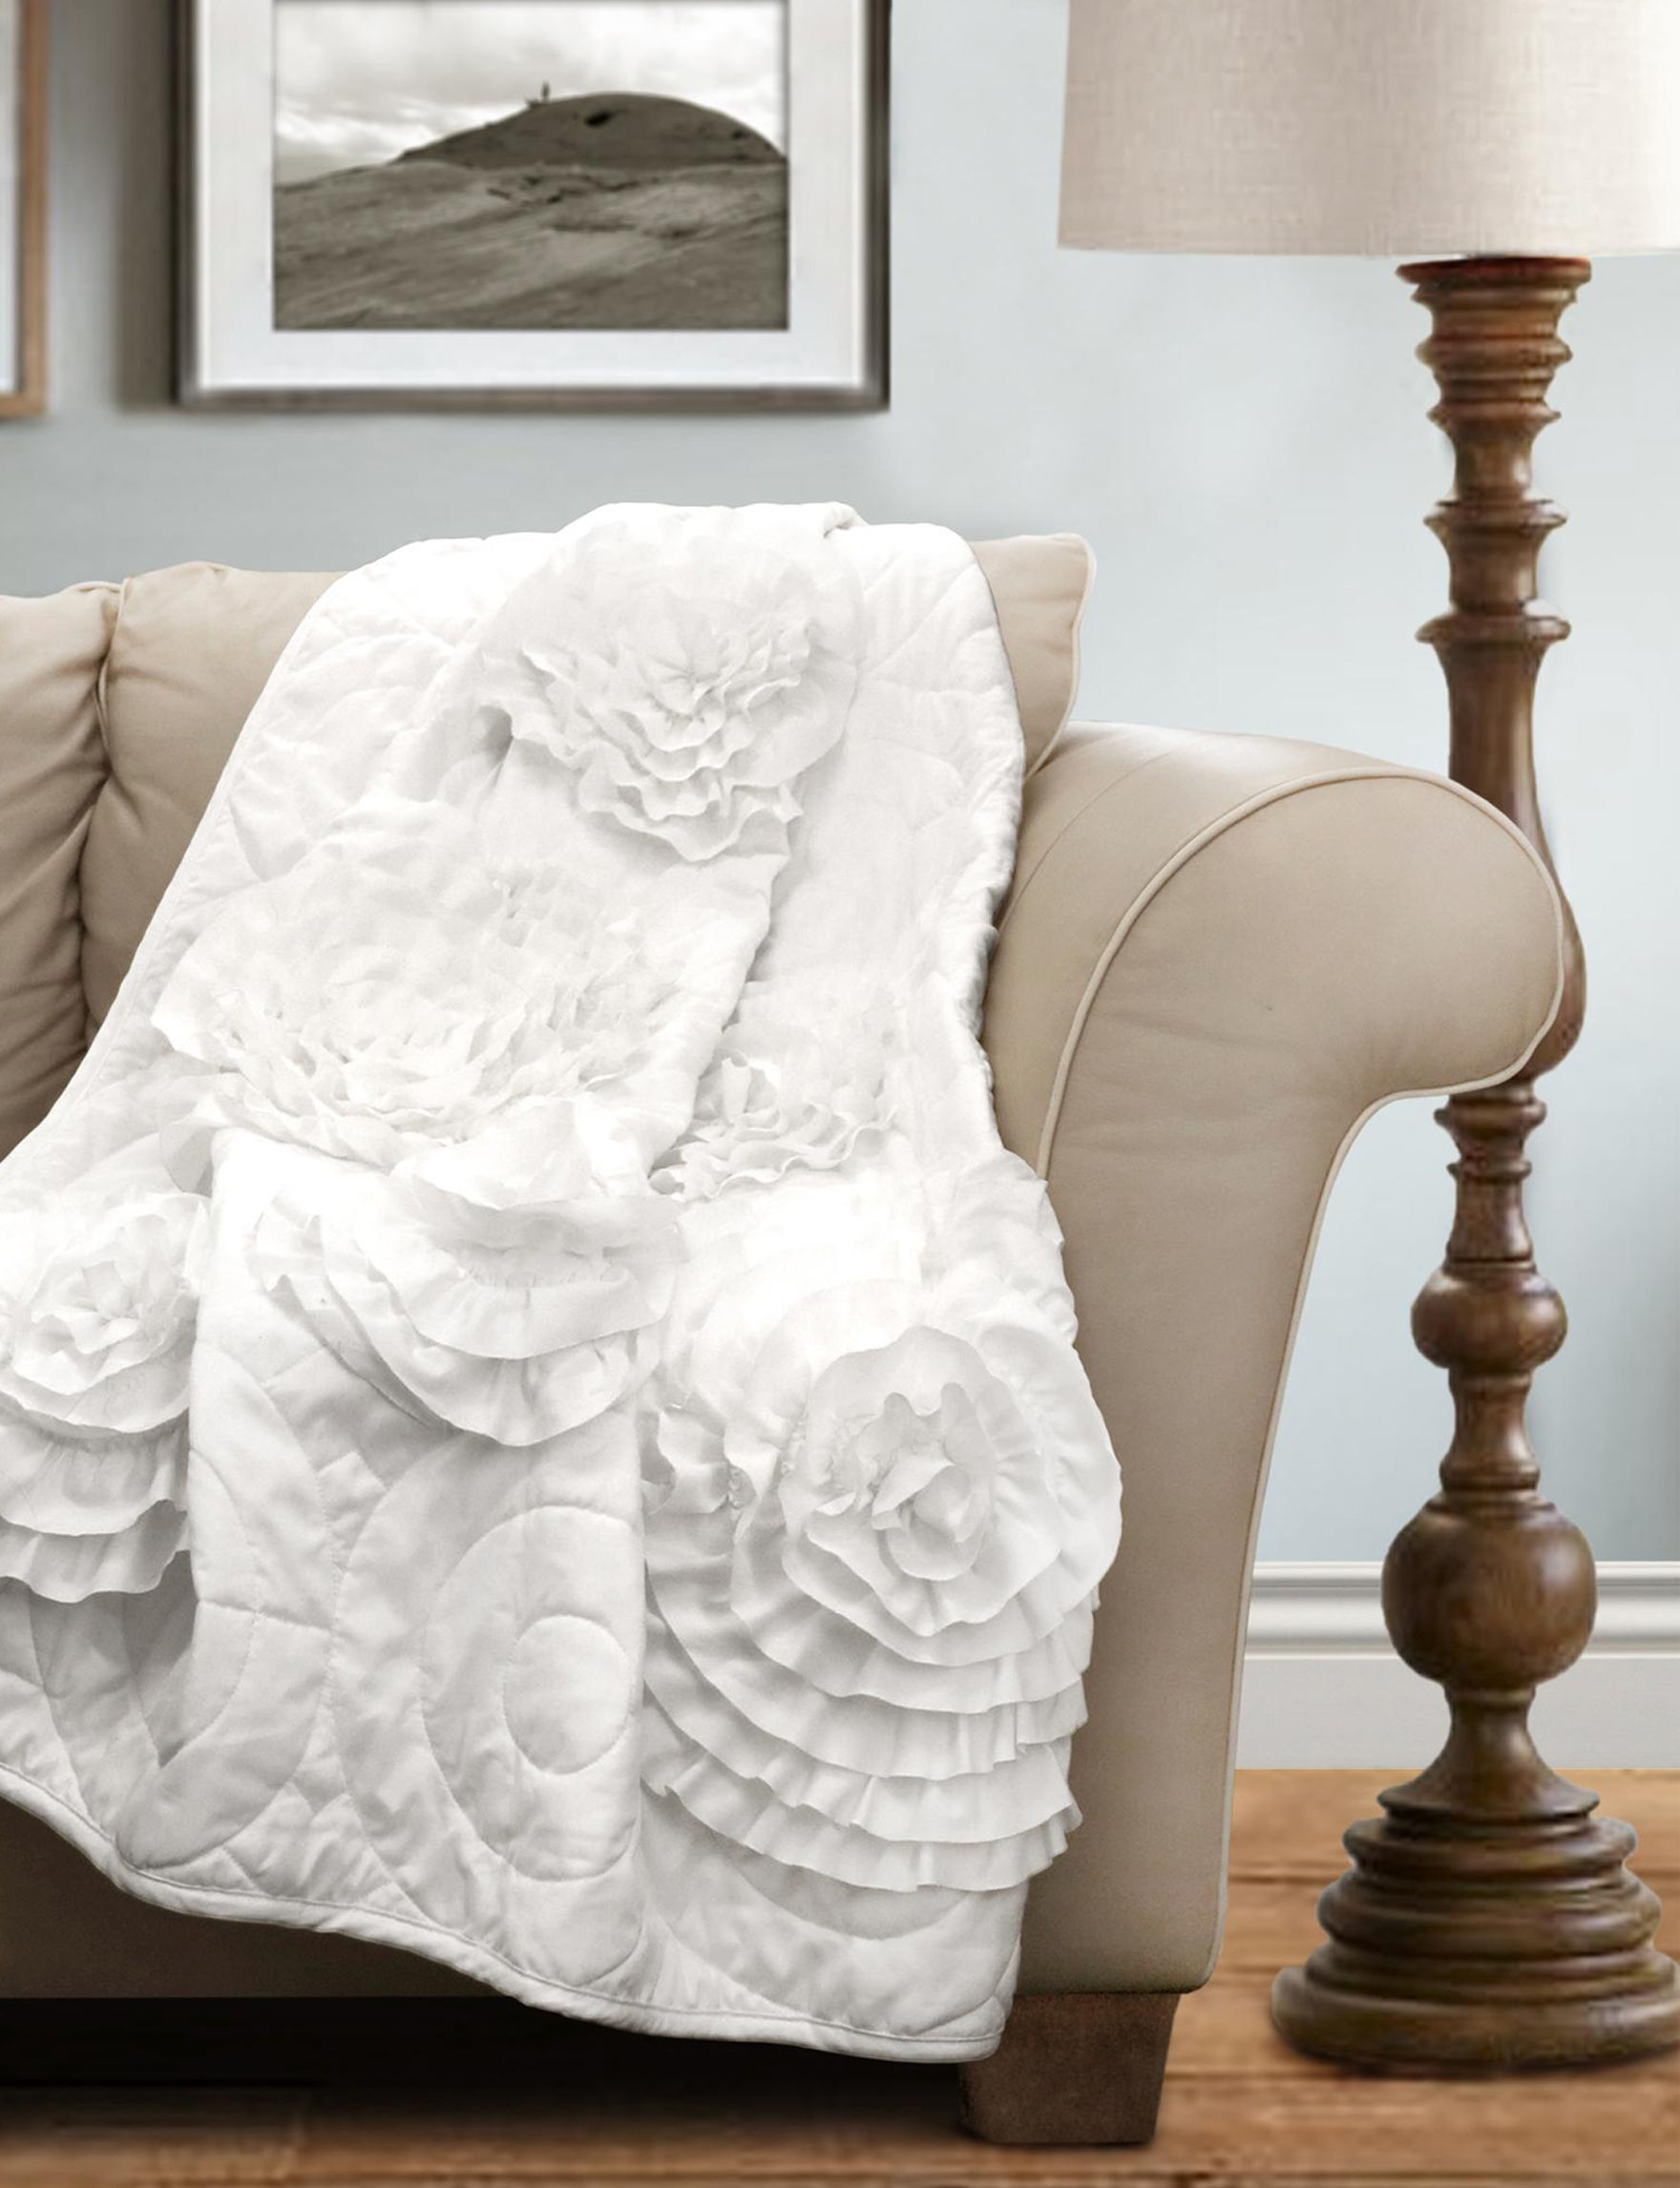 Lush Decor White Blankets & Throws